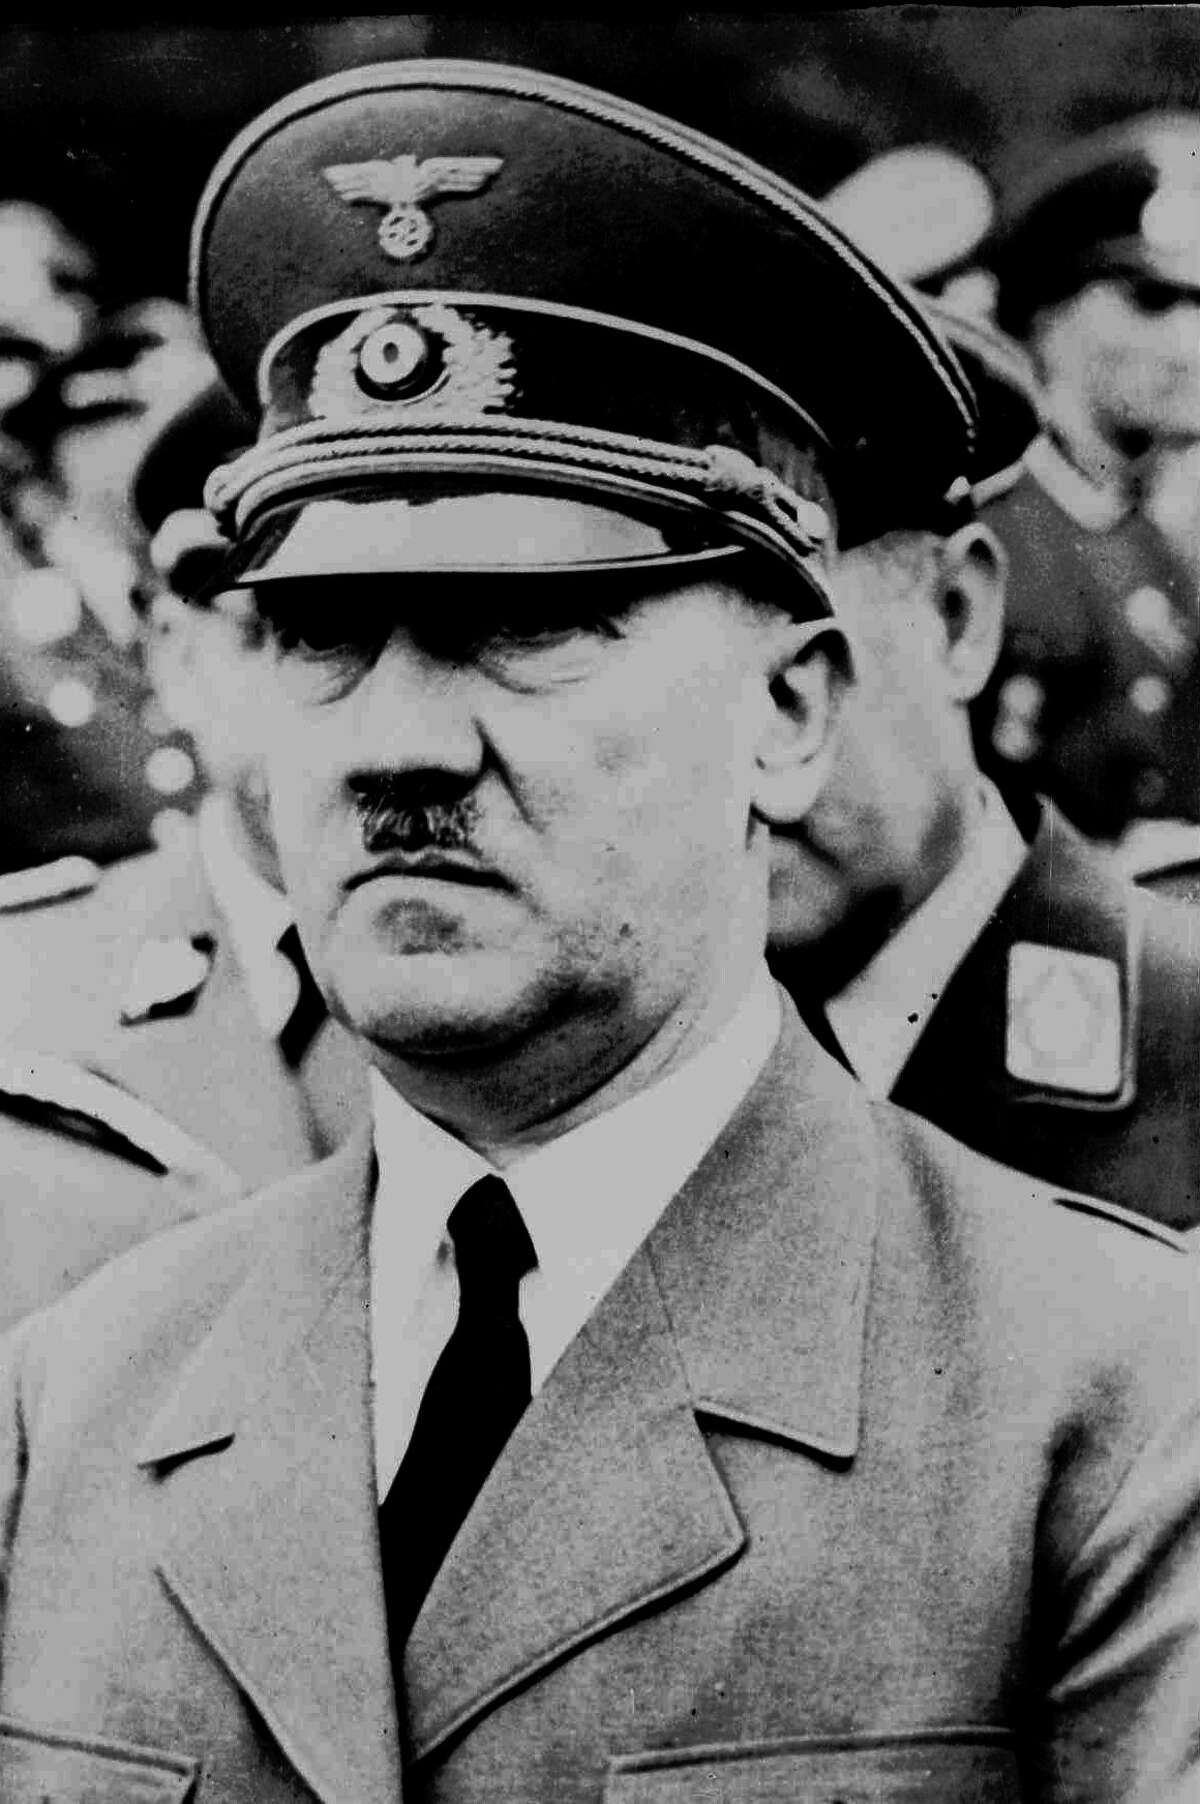 FILE. Letter writer remembers last days of Adolf Hitler in this week when an unprecedented attack at the U.S. Capitol occurred. (AP Photo, File)